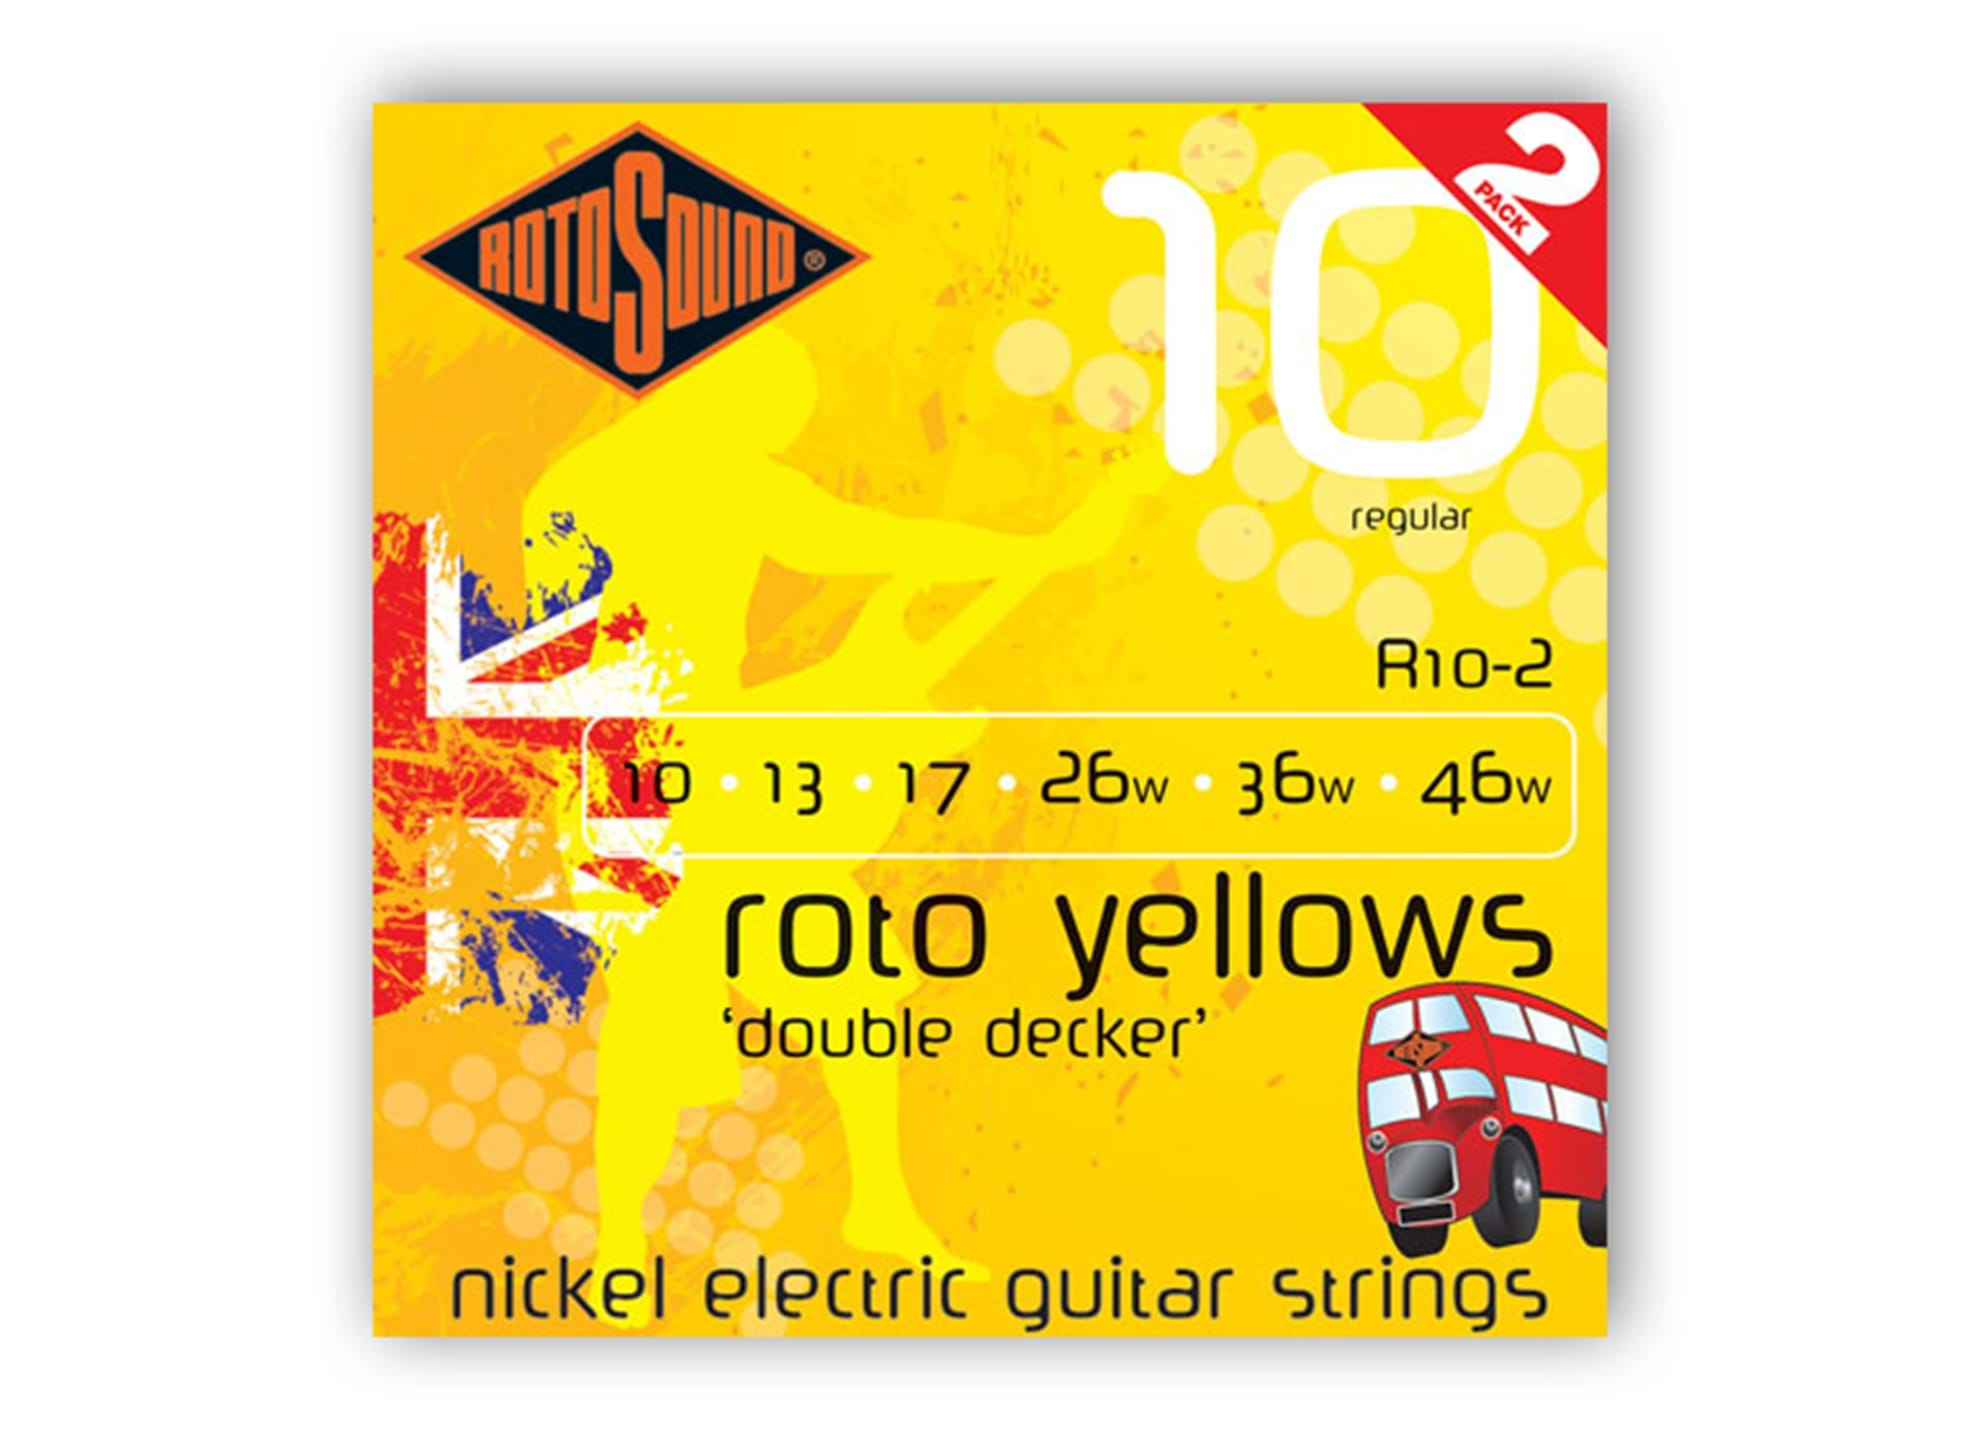 Roto Yellow Double Decker 2-pack, 10.46